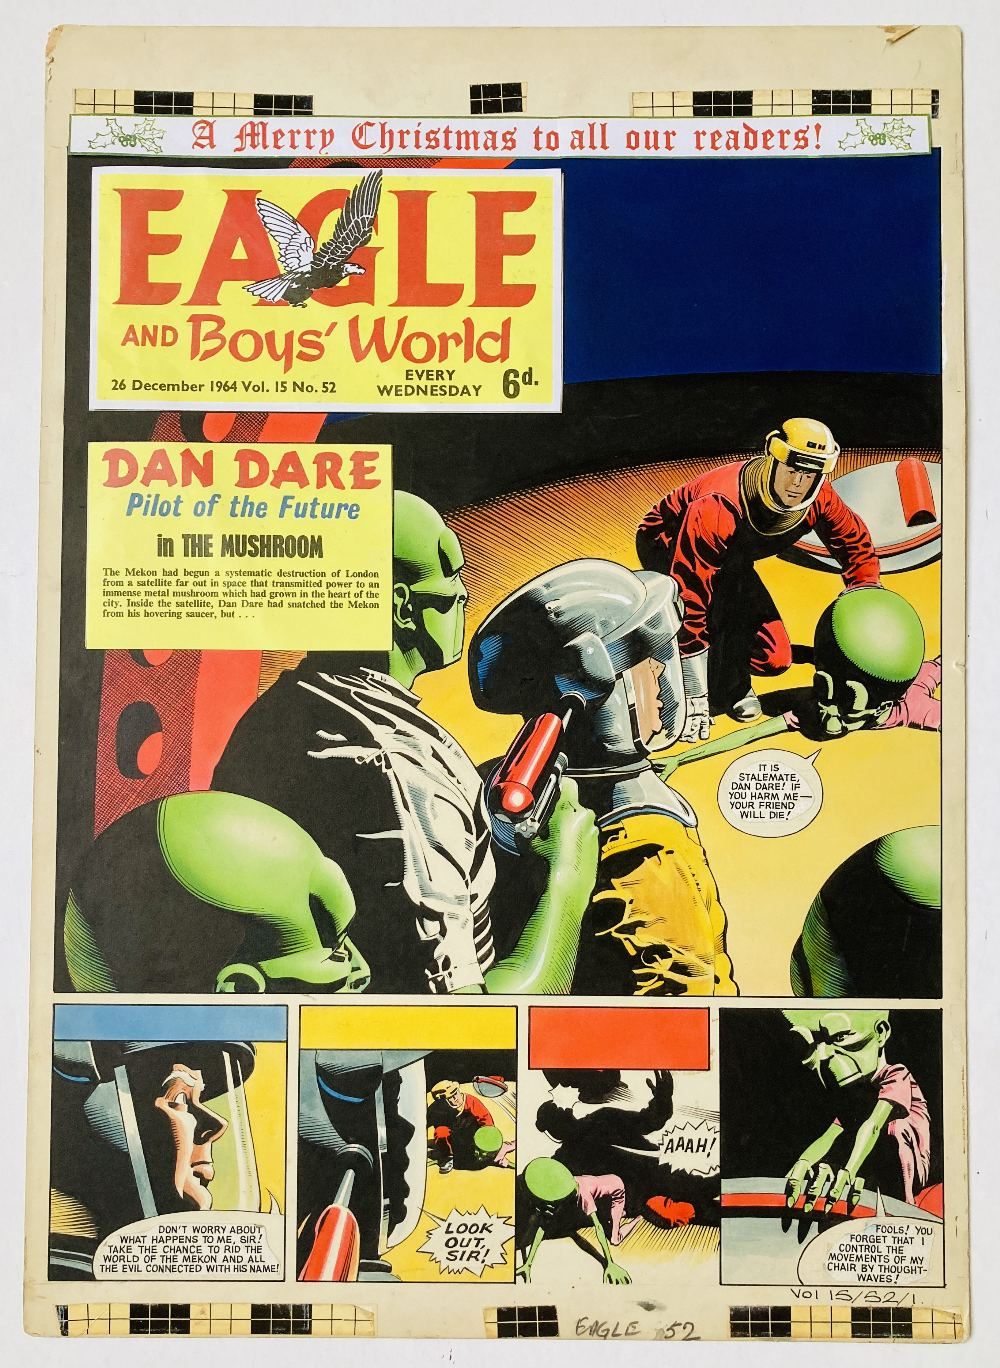 Lot 53 - Dan Dare original front cover artwork (1969) by Keith Watson for The Eagle Vol: 15, No 52. As